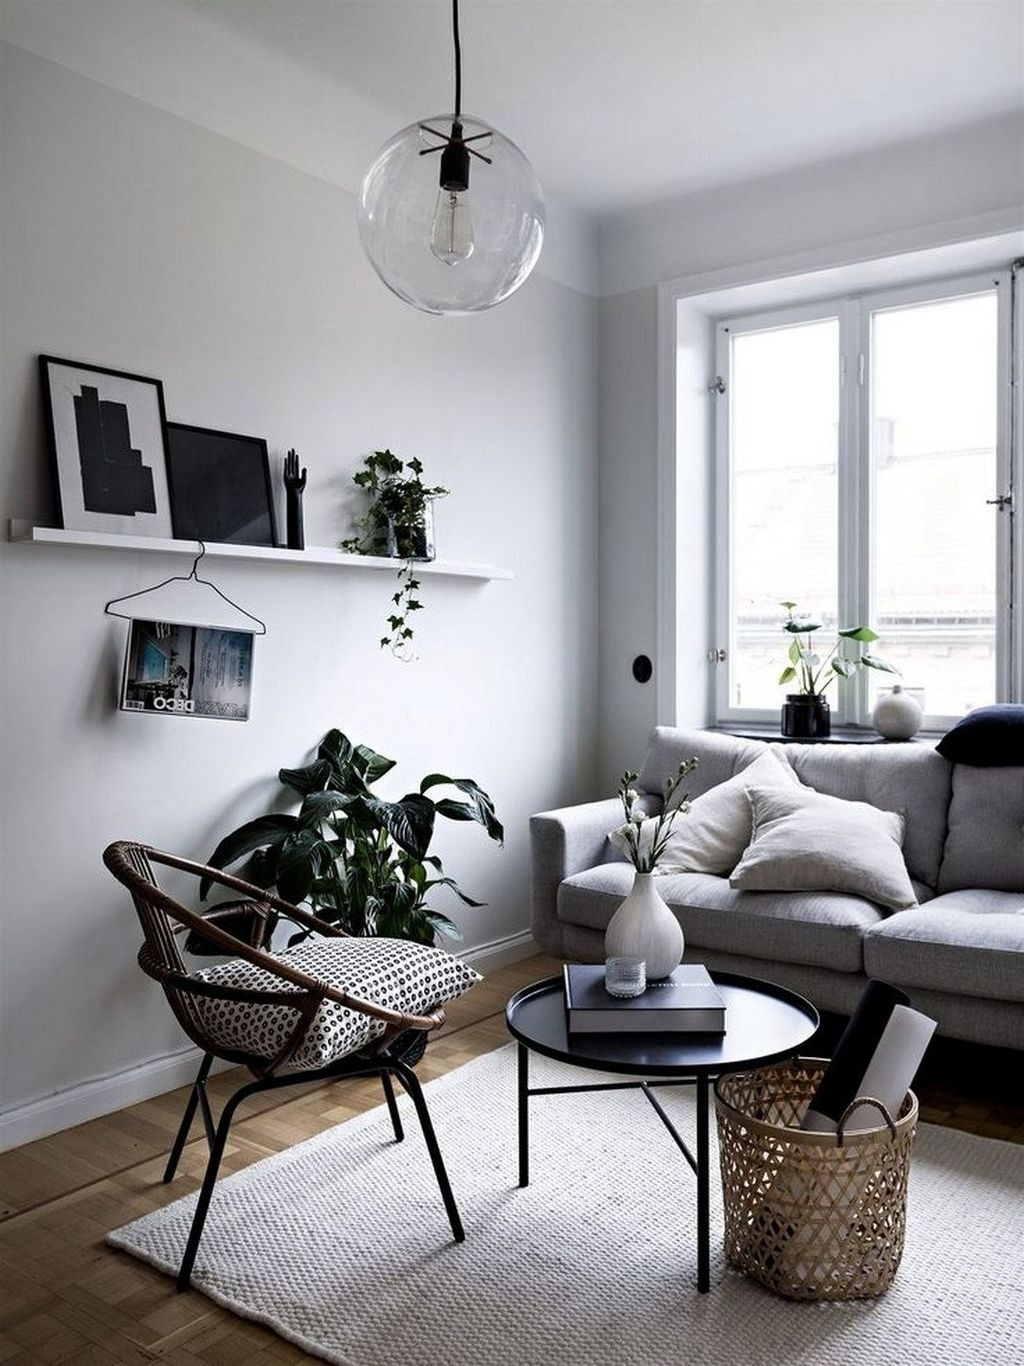 Stunning Minimalist Furniture Design Ideas For Your Apartment 13